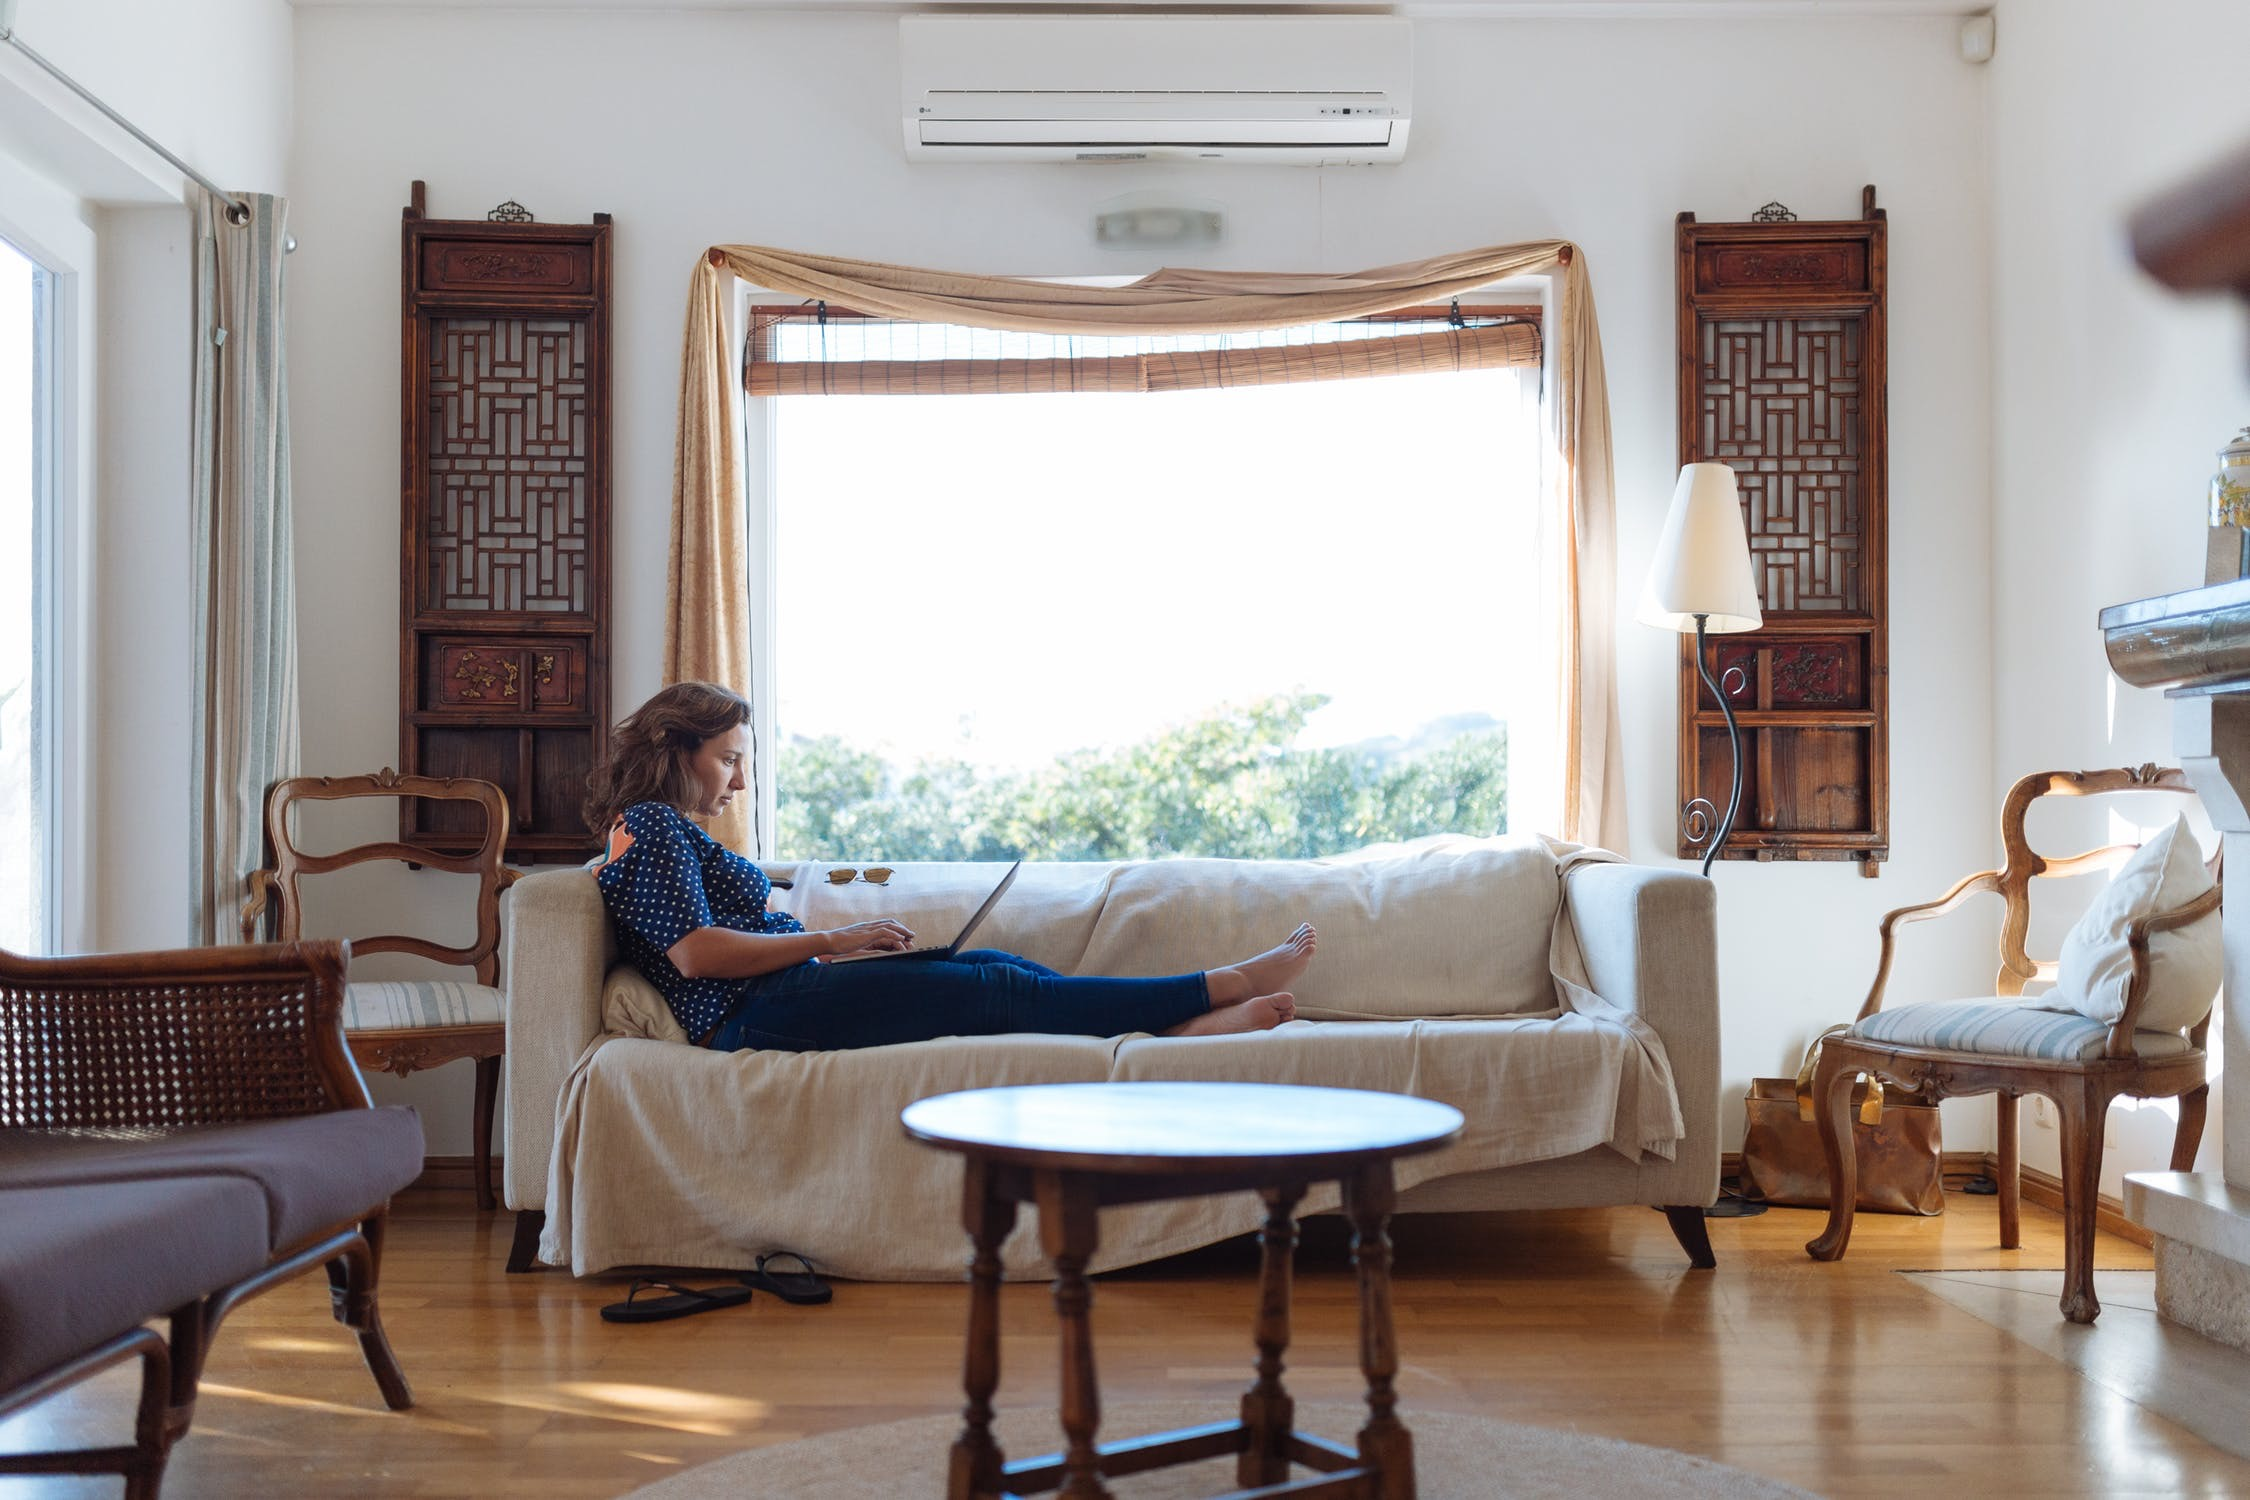 Image of Renting Vs Subletting: What's the Difference, and Which Is Right for You?